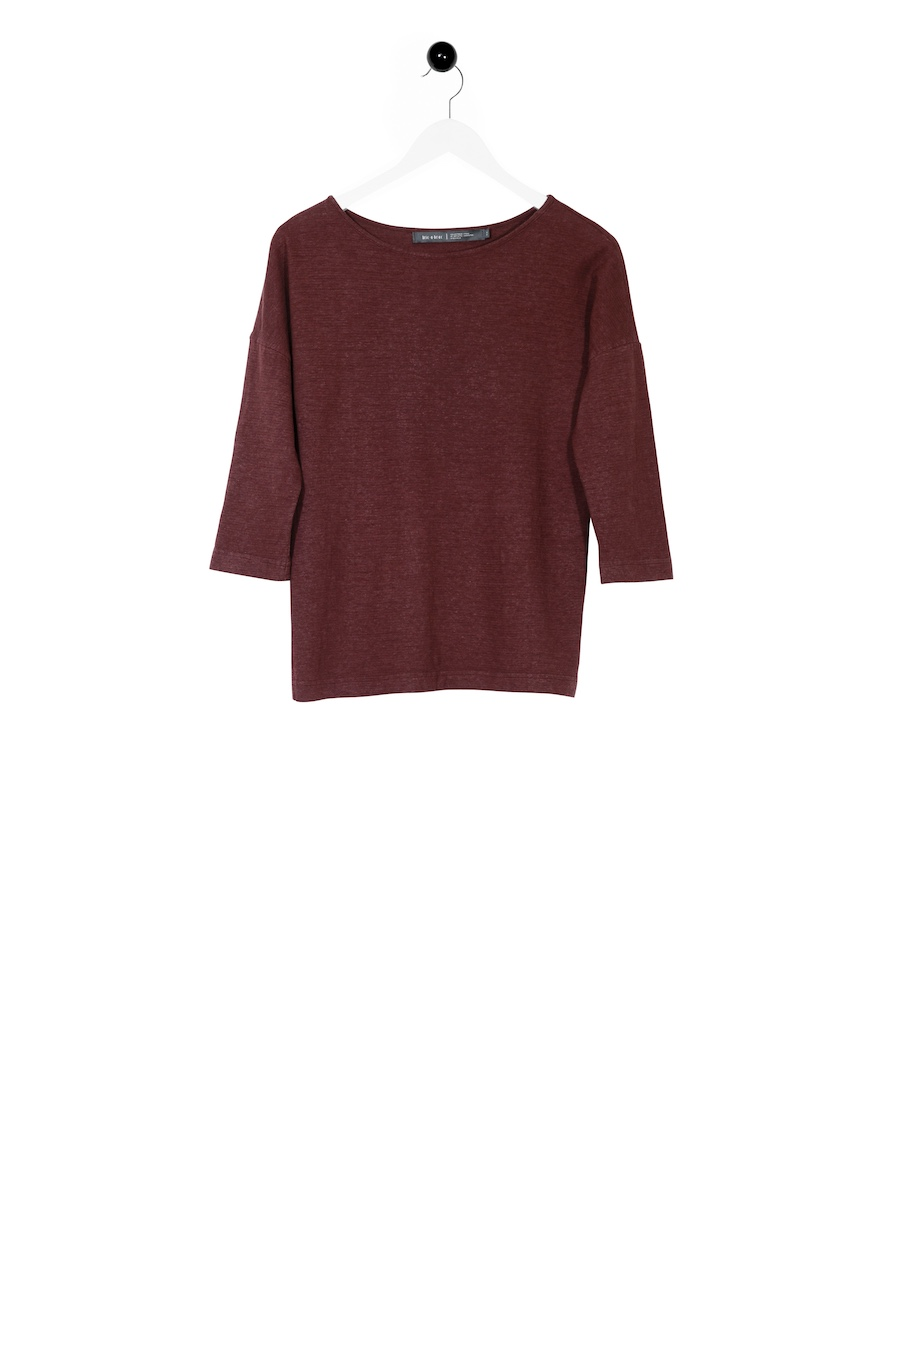 Örtofta Sweater 3/4